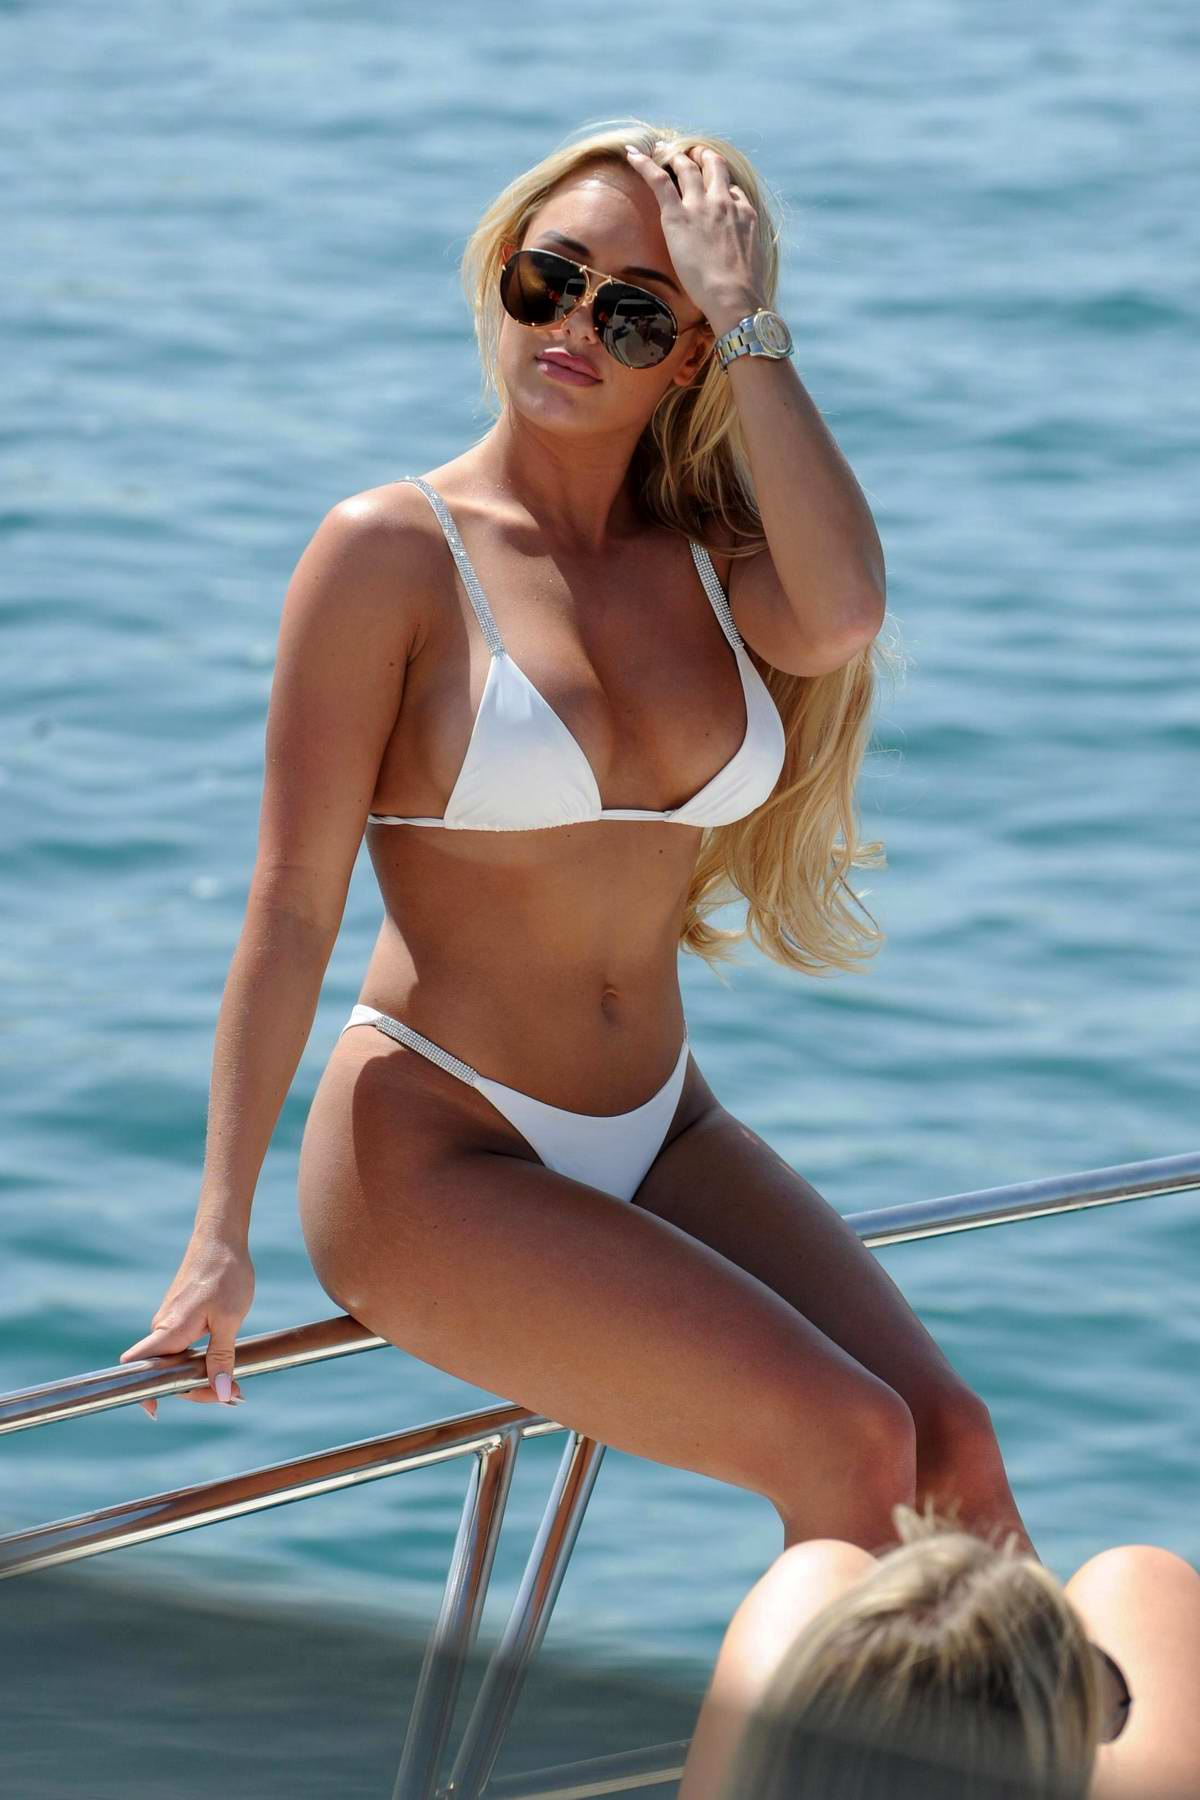 Amber Turner wears a white bikini as she enjoys a day with her friends on a yacht in Dubai